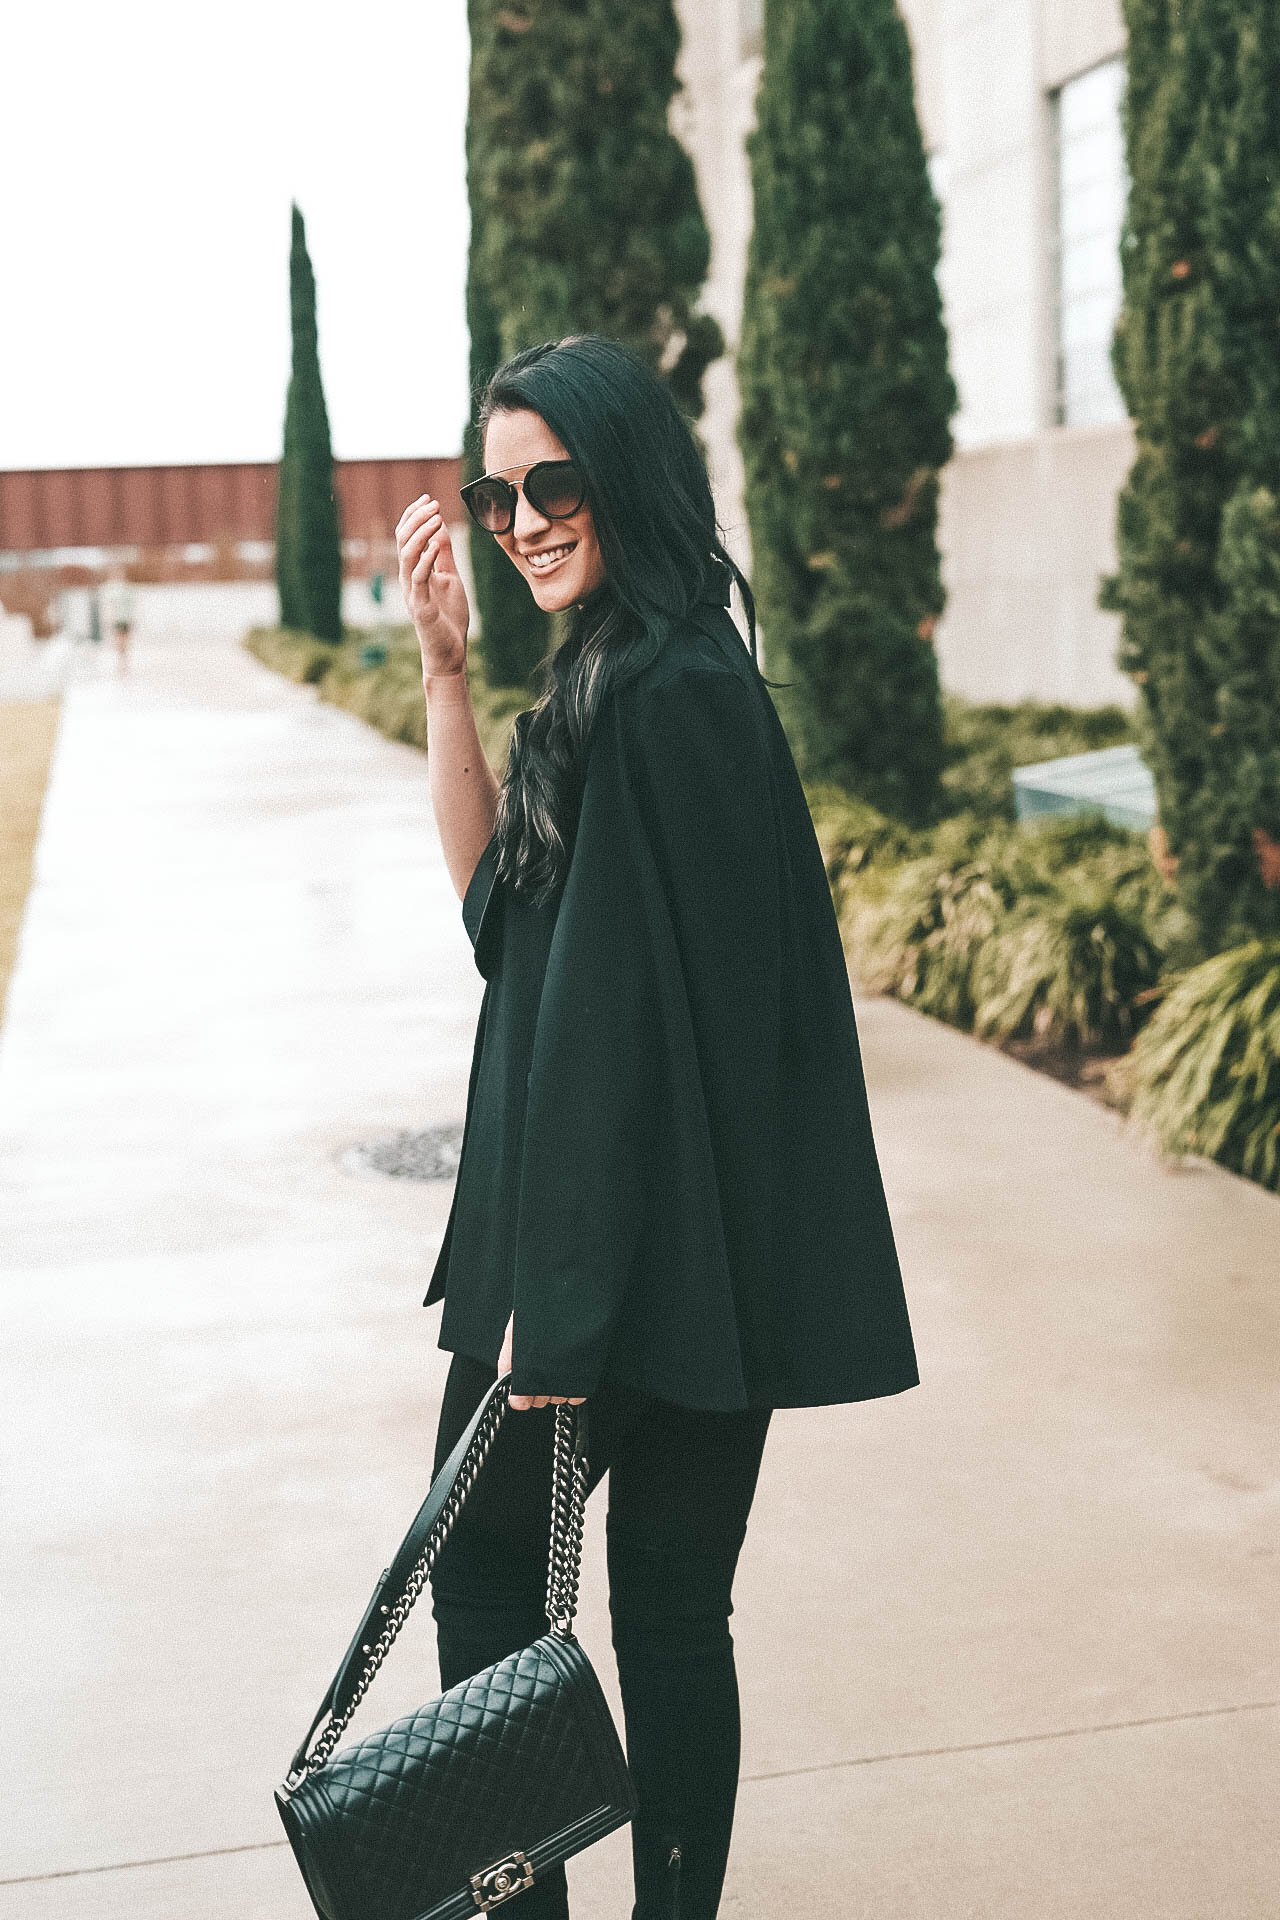 Black tuxedo cape and lace cami || Dressed to Kill #tuxedocape #camisole #lacecami - Shelli Segal Removable Tuxedo Cap by popular Austin style blogger Dressed to Kill